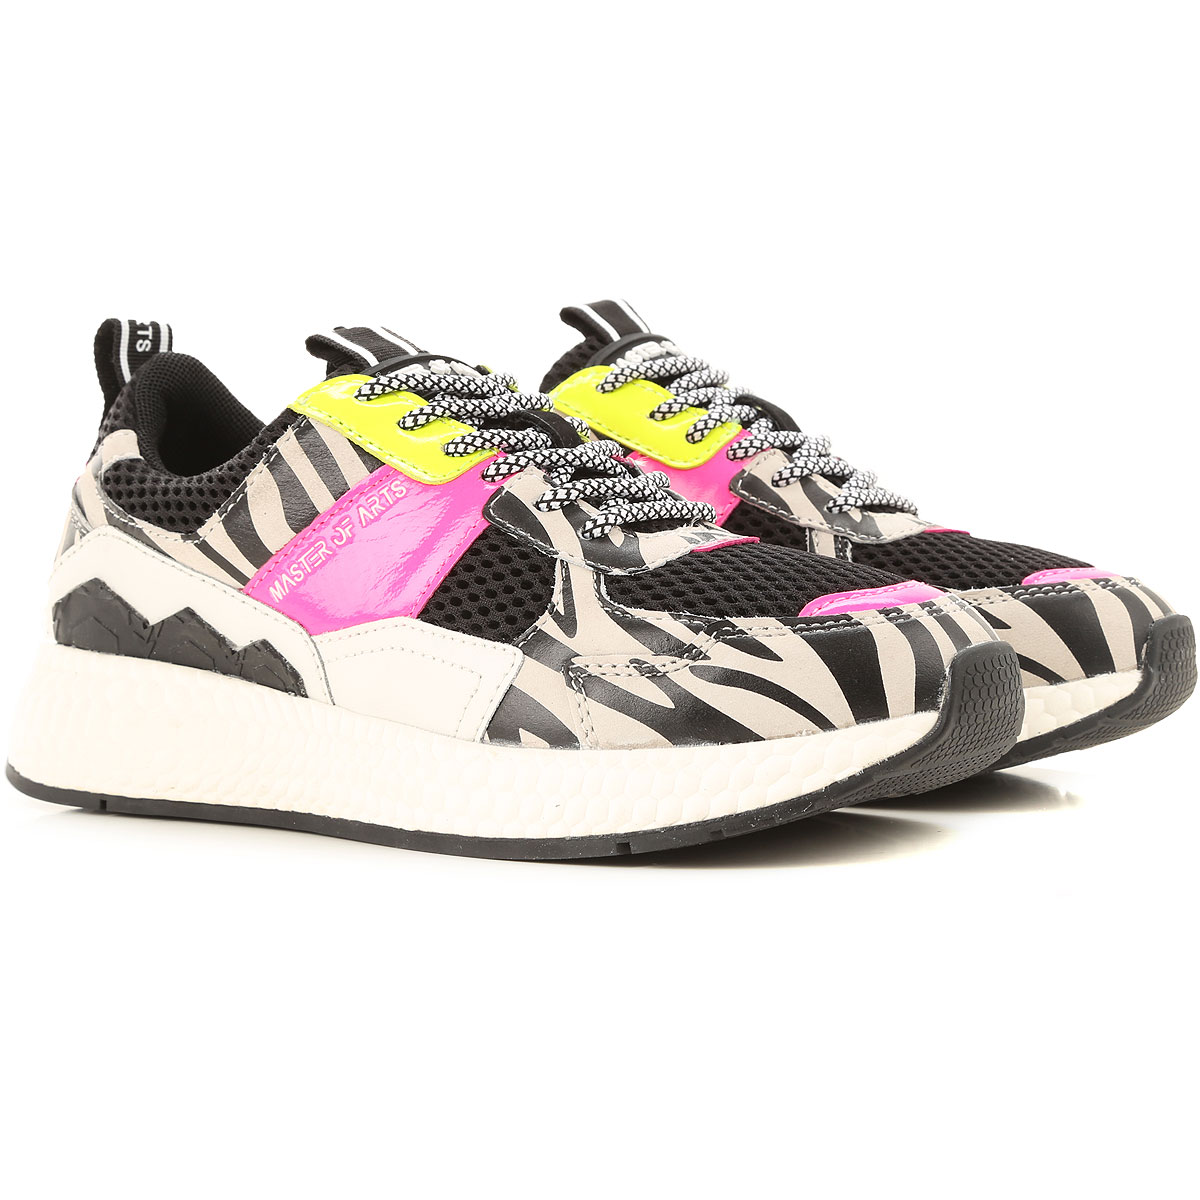 Moa Master of Arts Sneakers for Women On Sale, Black, Leather, 2019, 10 5 6 8 9